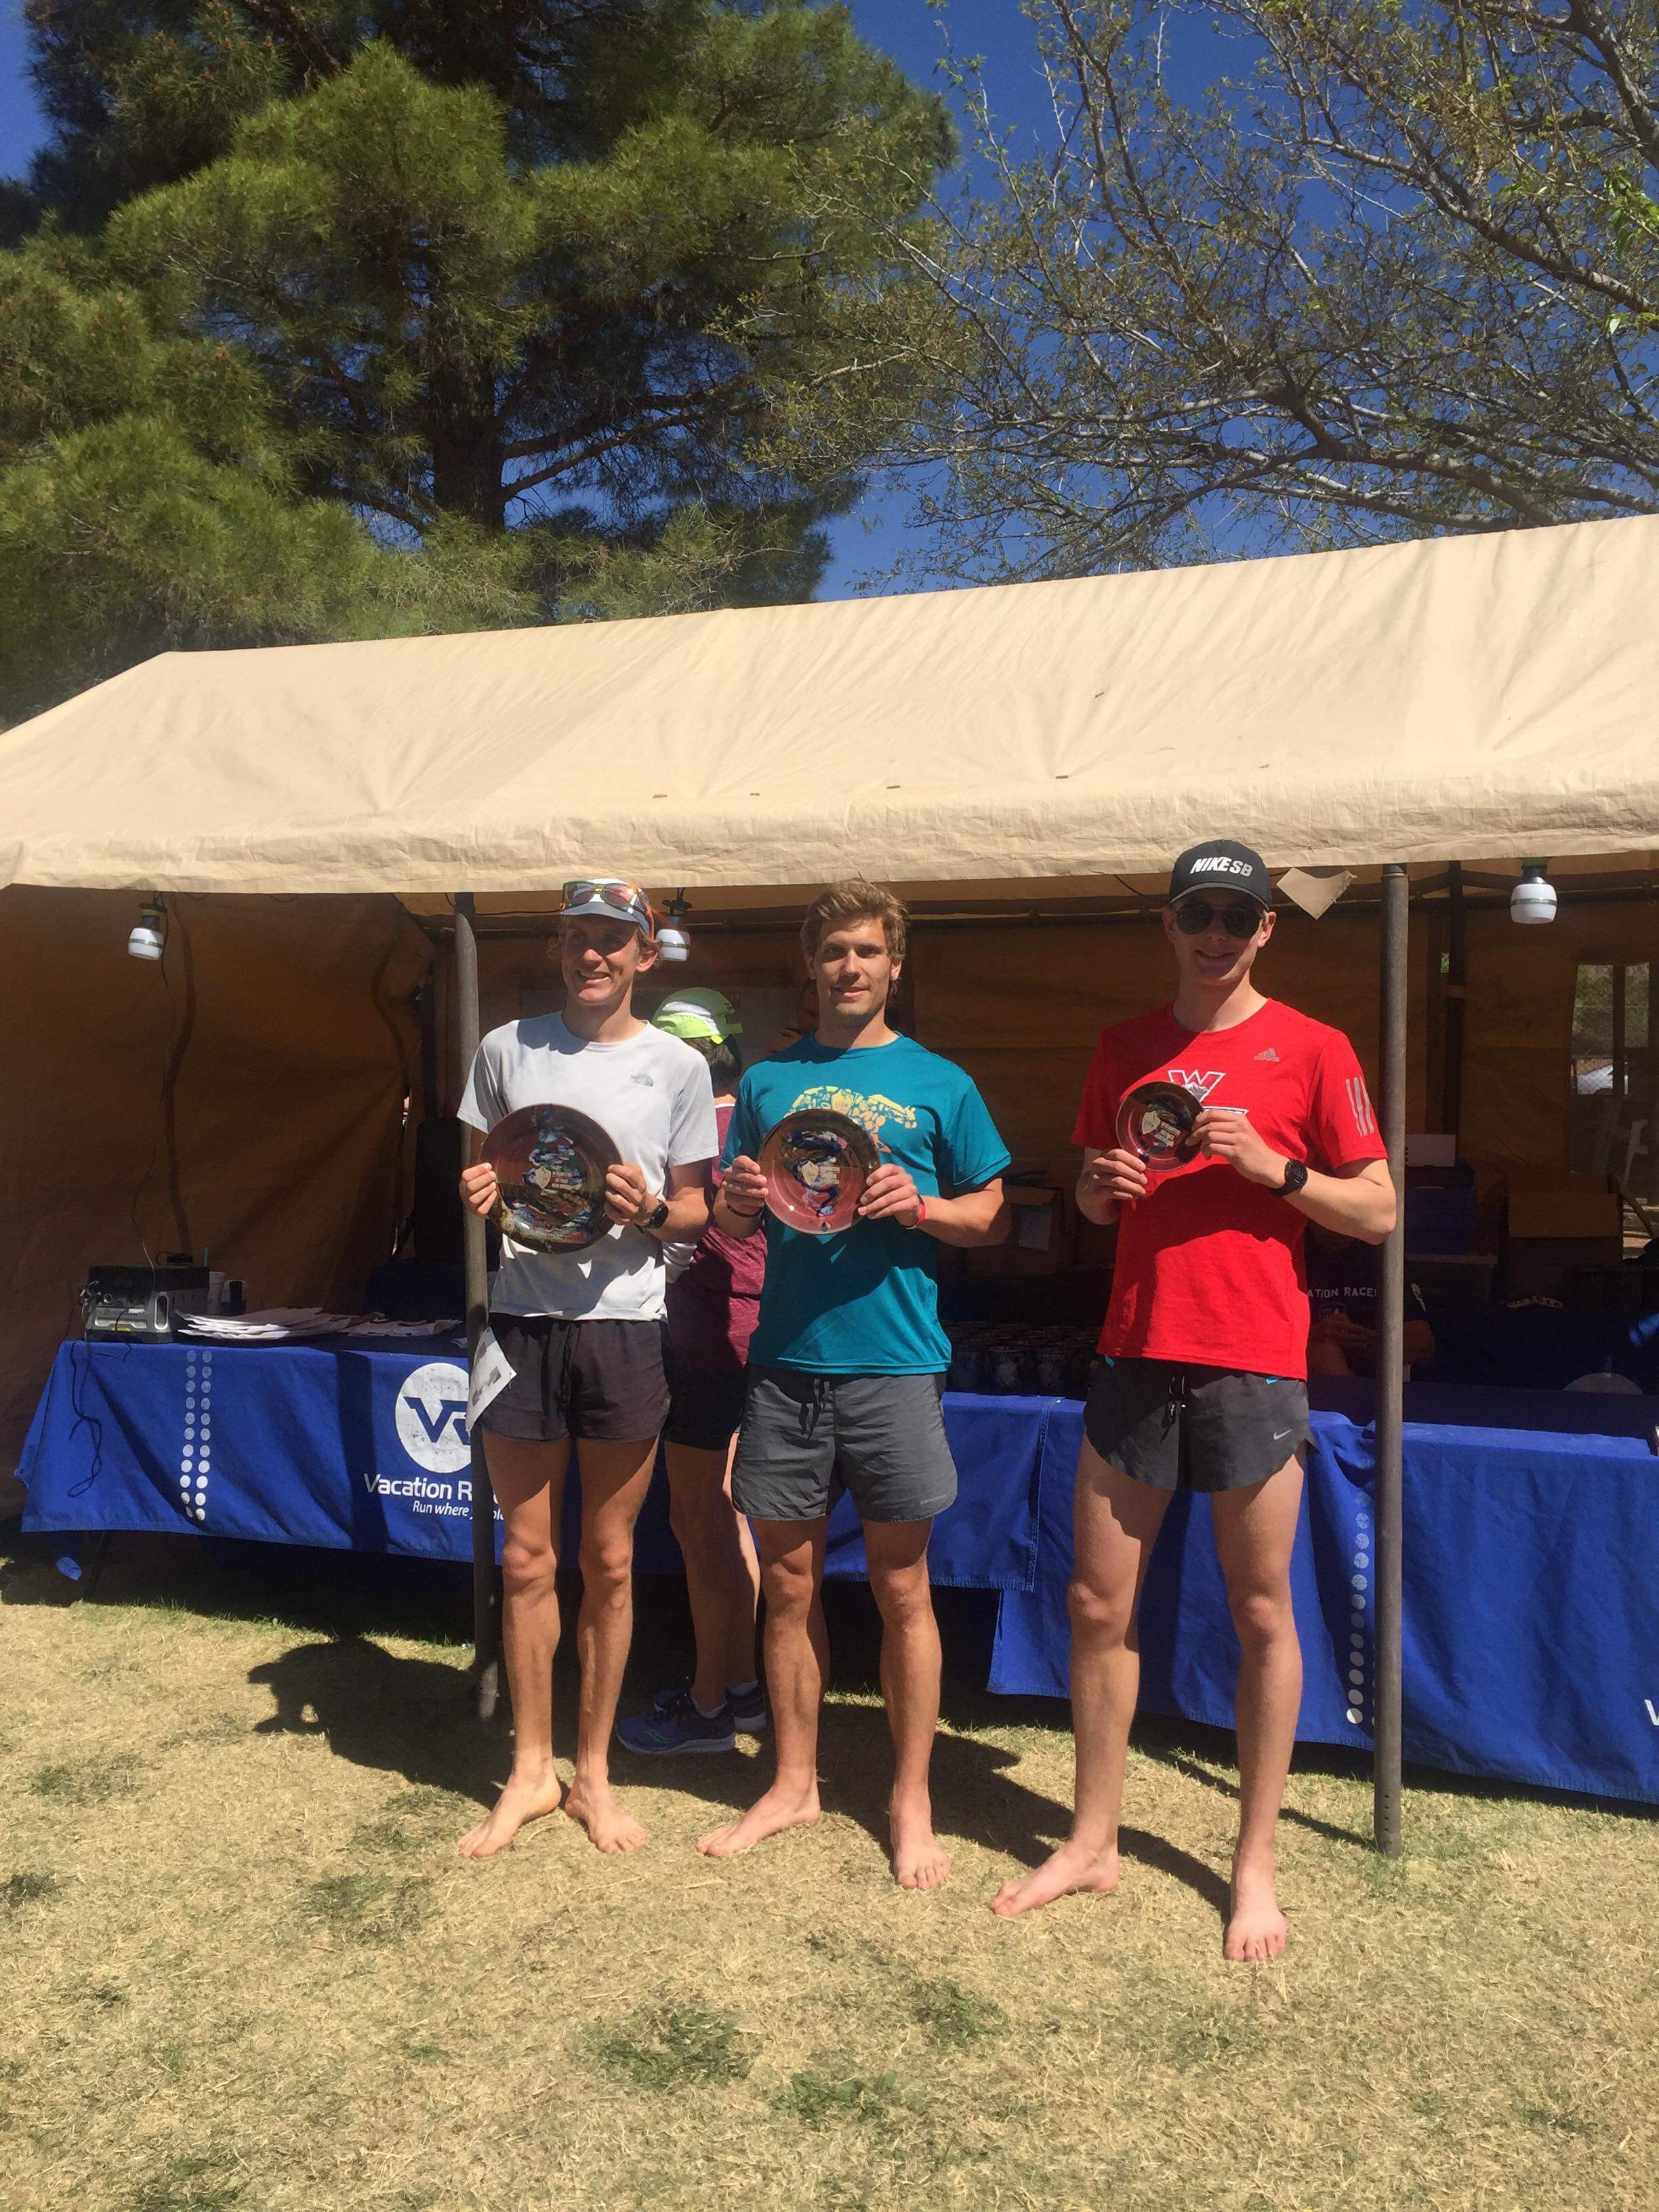 At the finish receiving our prizes for 1st, 2nd, and 3rd overall. These young bucks are fast!